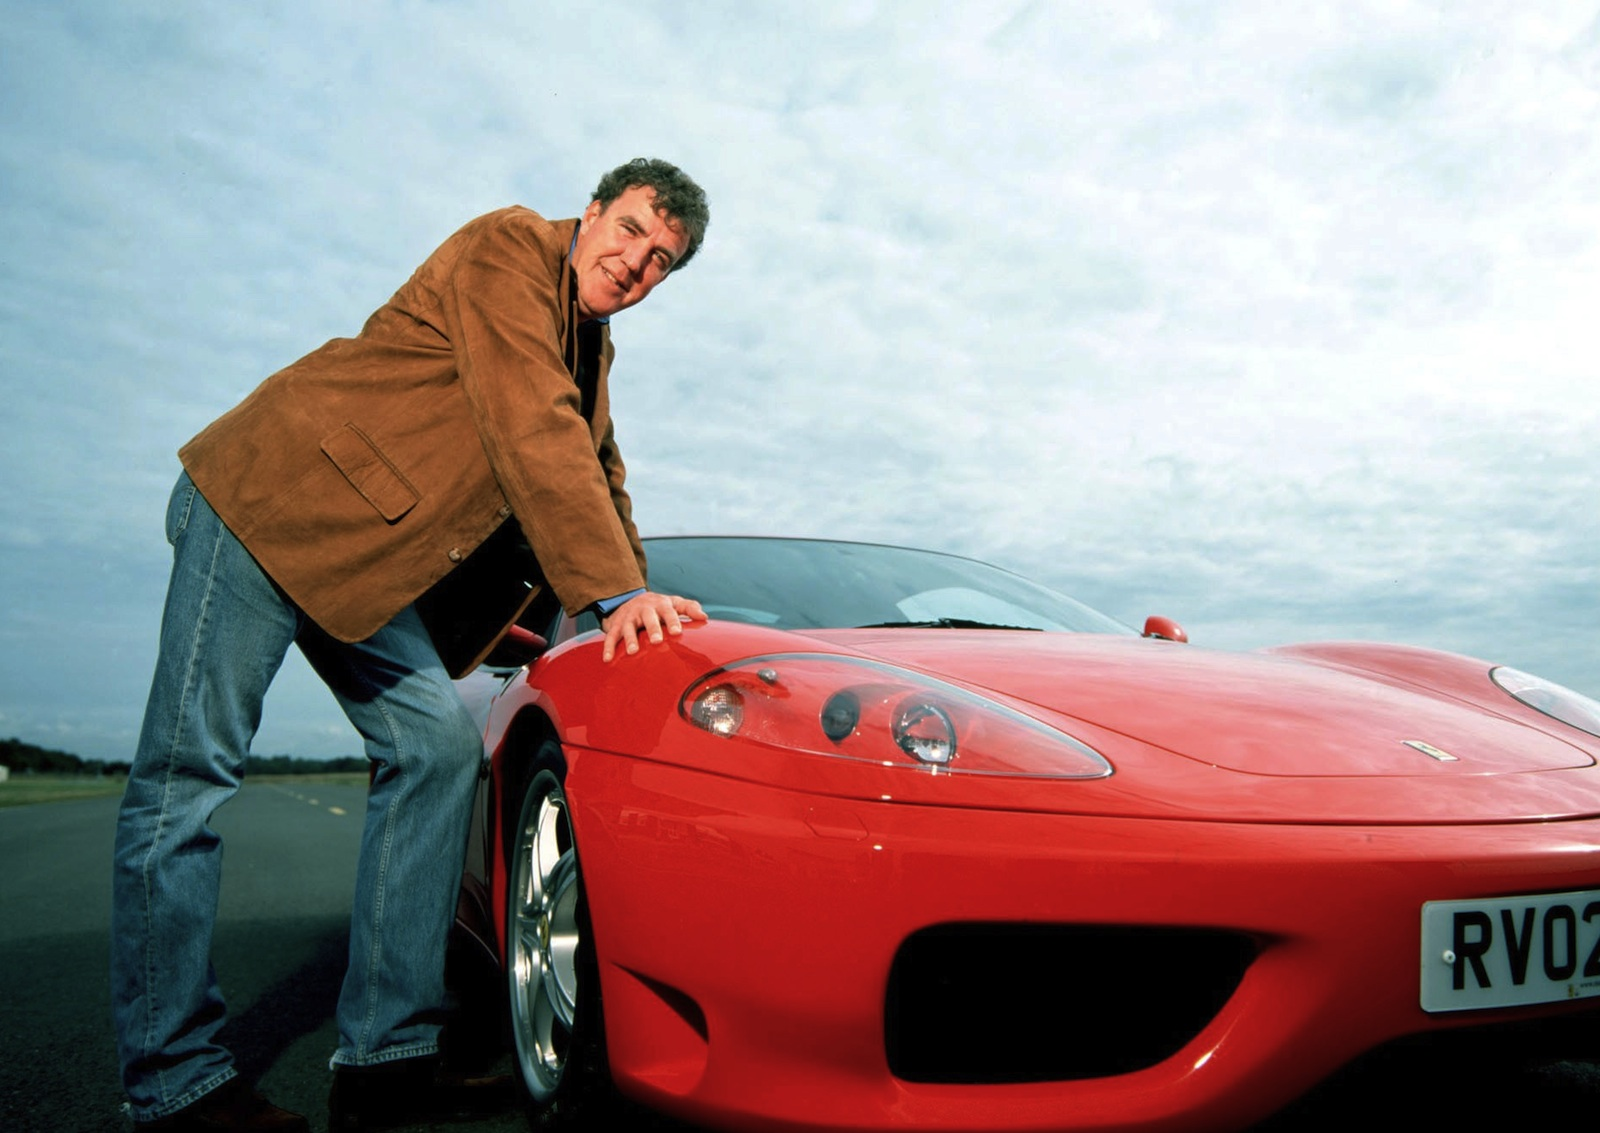 Jeremy Clarkson Cars: Sorted Blog: What Does The Car You Drive Say About You?